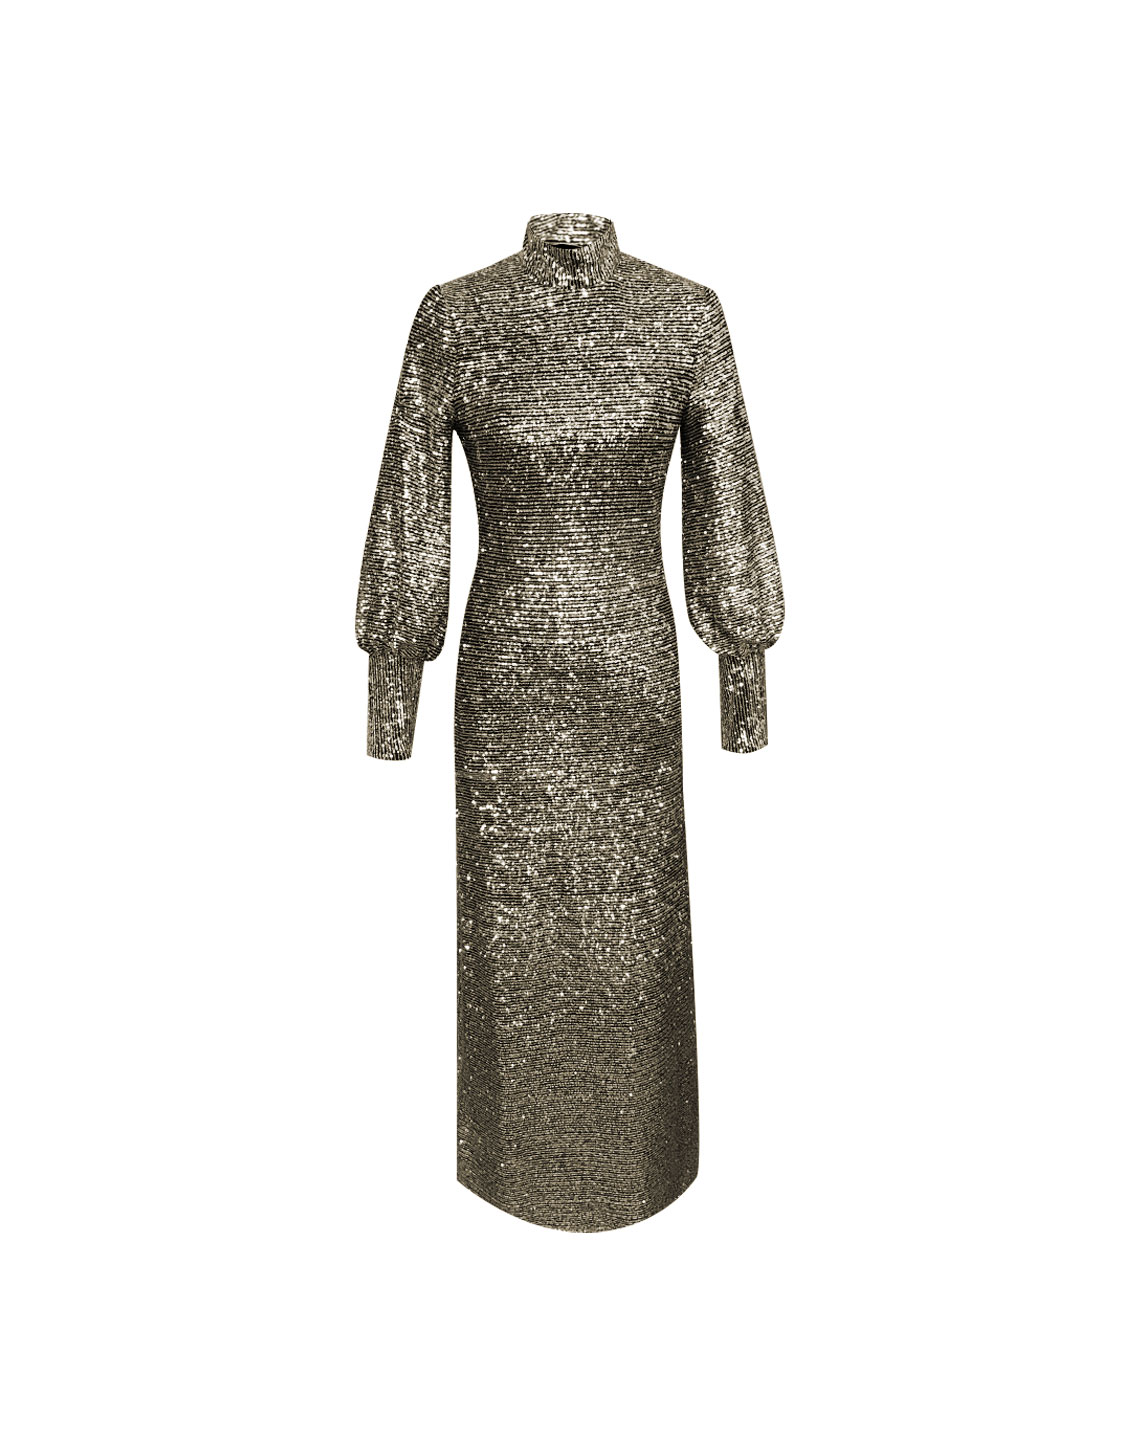 Como Dress Sequins - Gold by Jessica K on curated-crowd.com